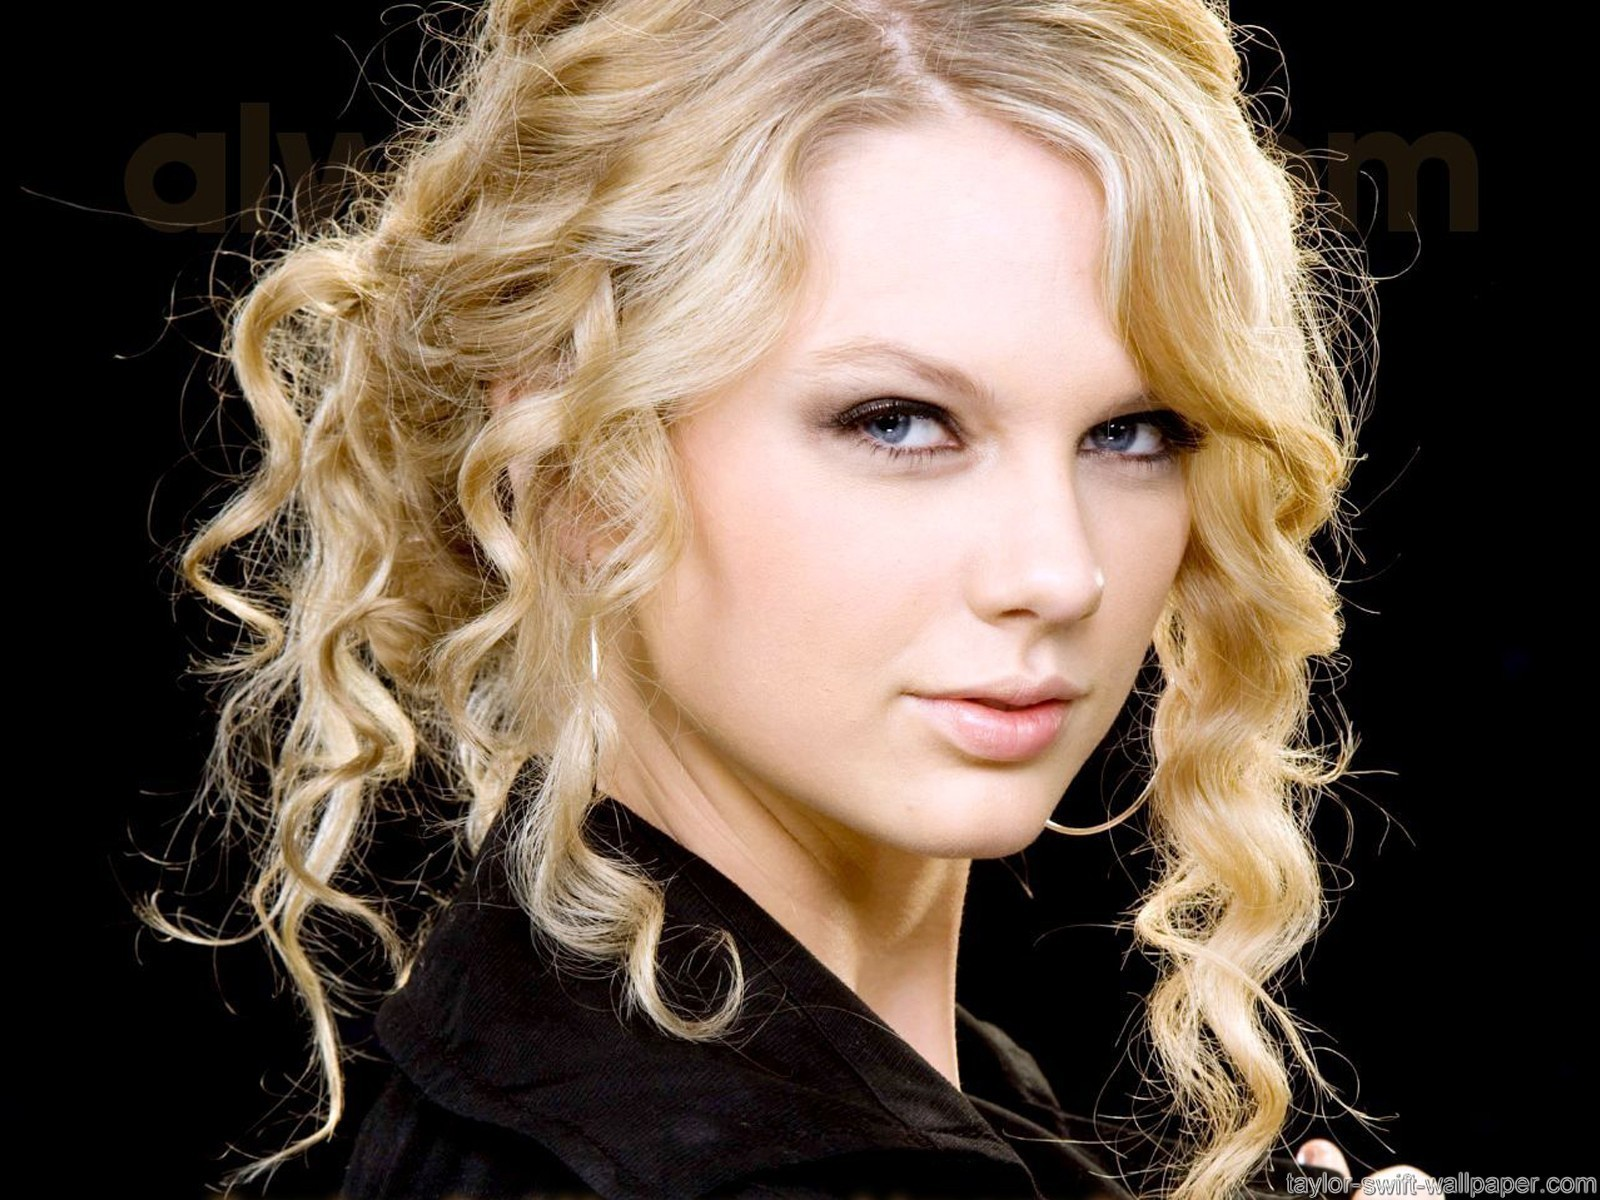 taylor swift - Taylor Swift Wallpaper (15913932) - Fanpop Taylor Swift